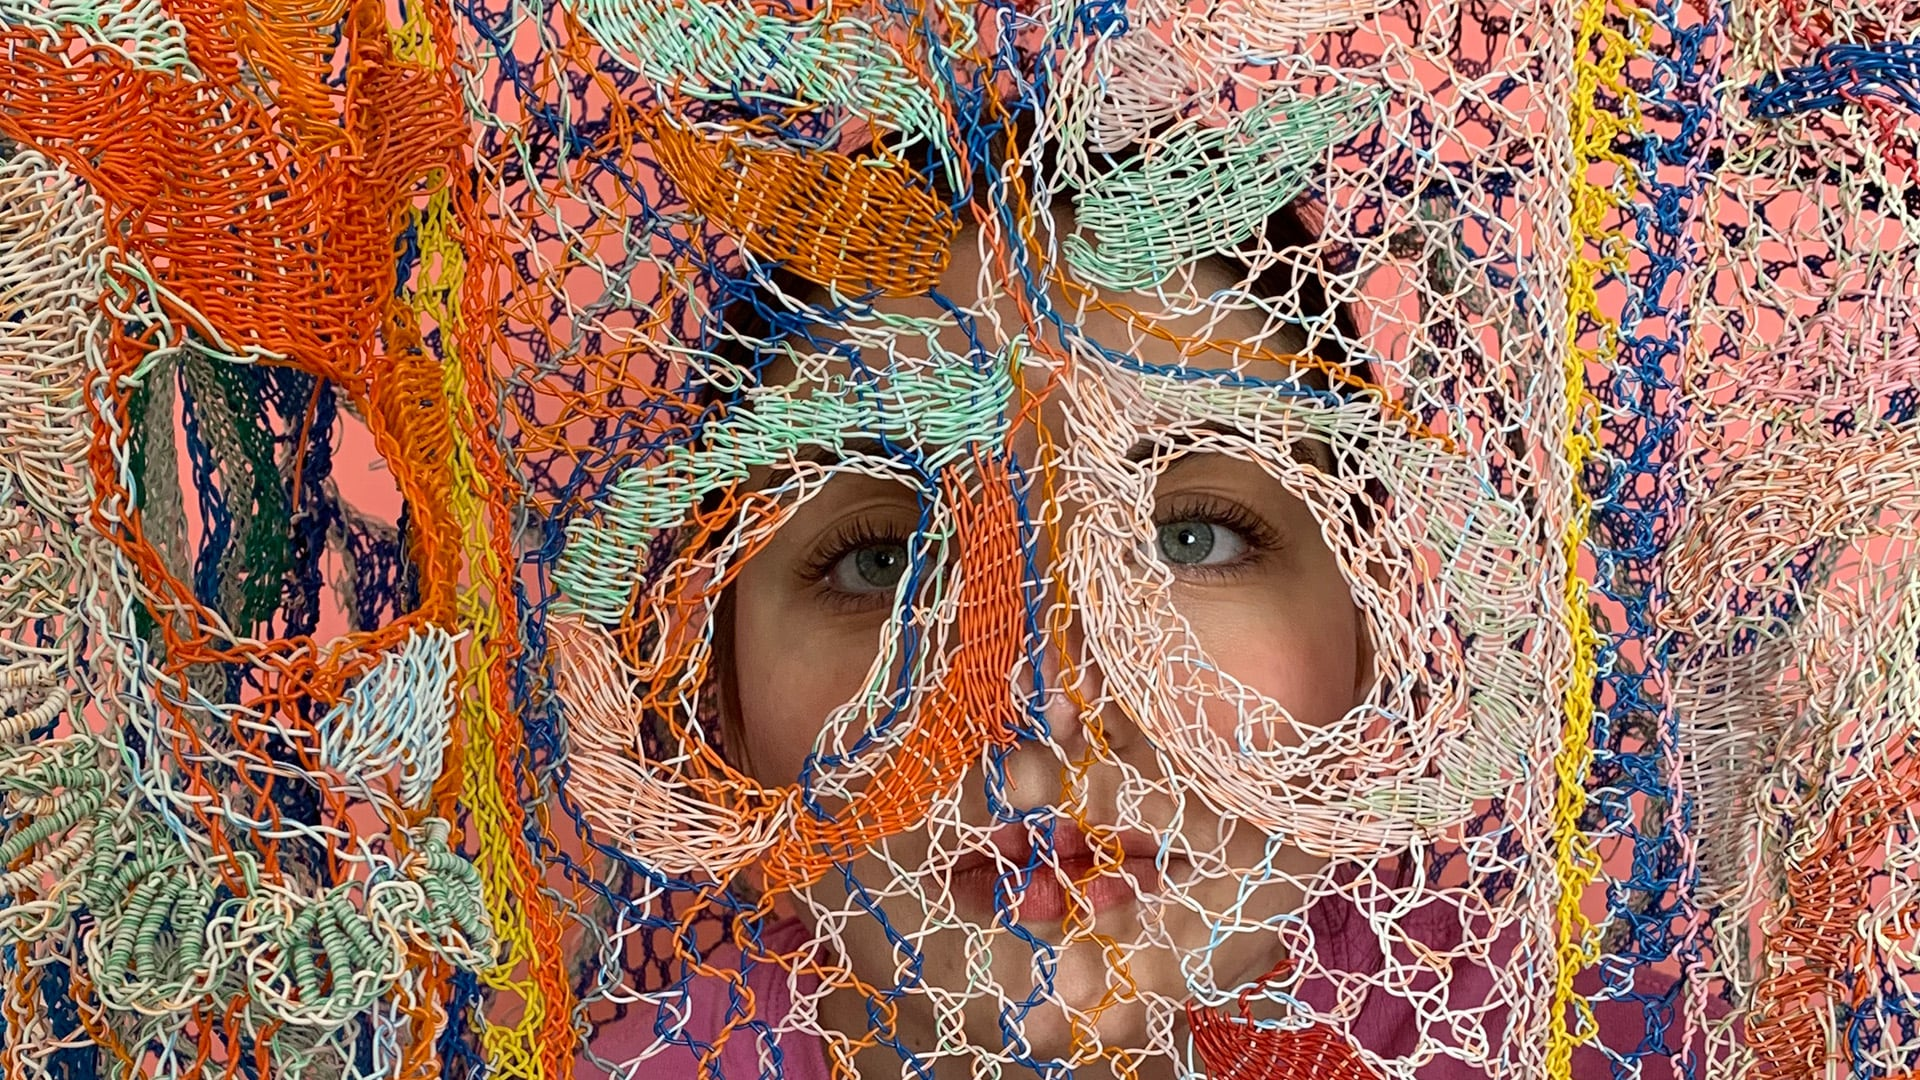 Alexandra Sipa weaves discarded electrical wires together like lace for graduate fashion collection